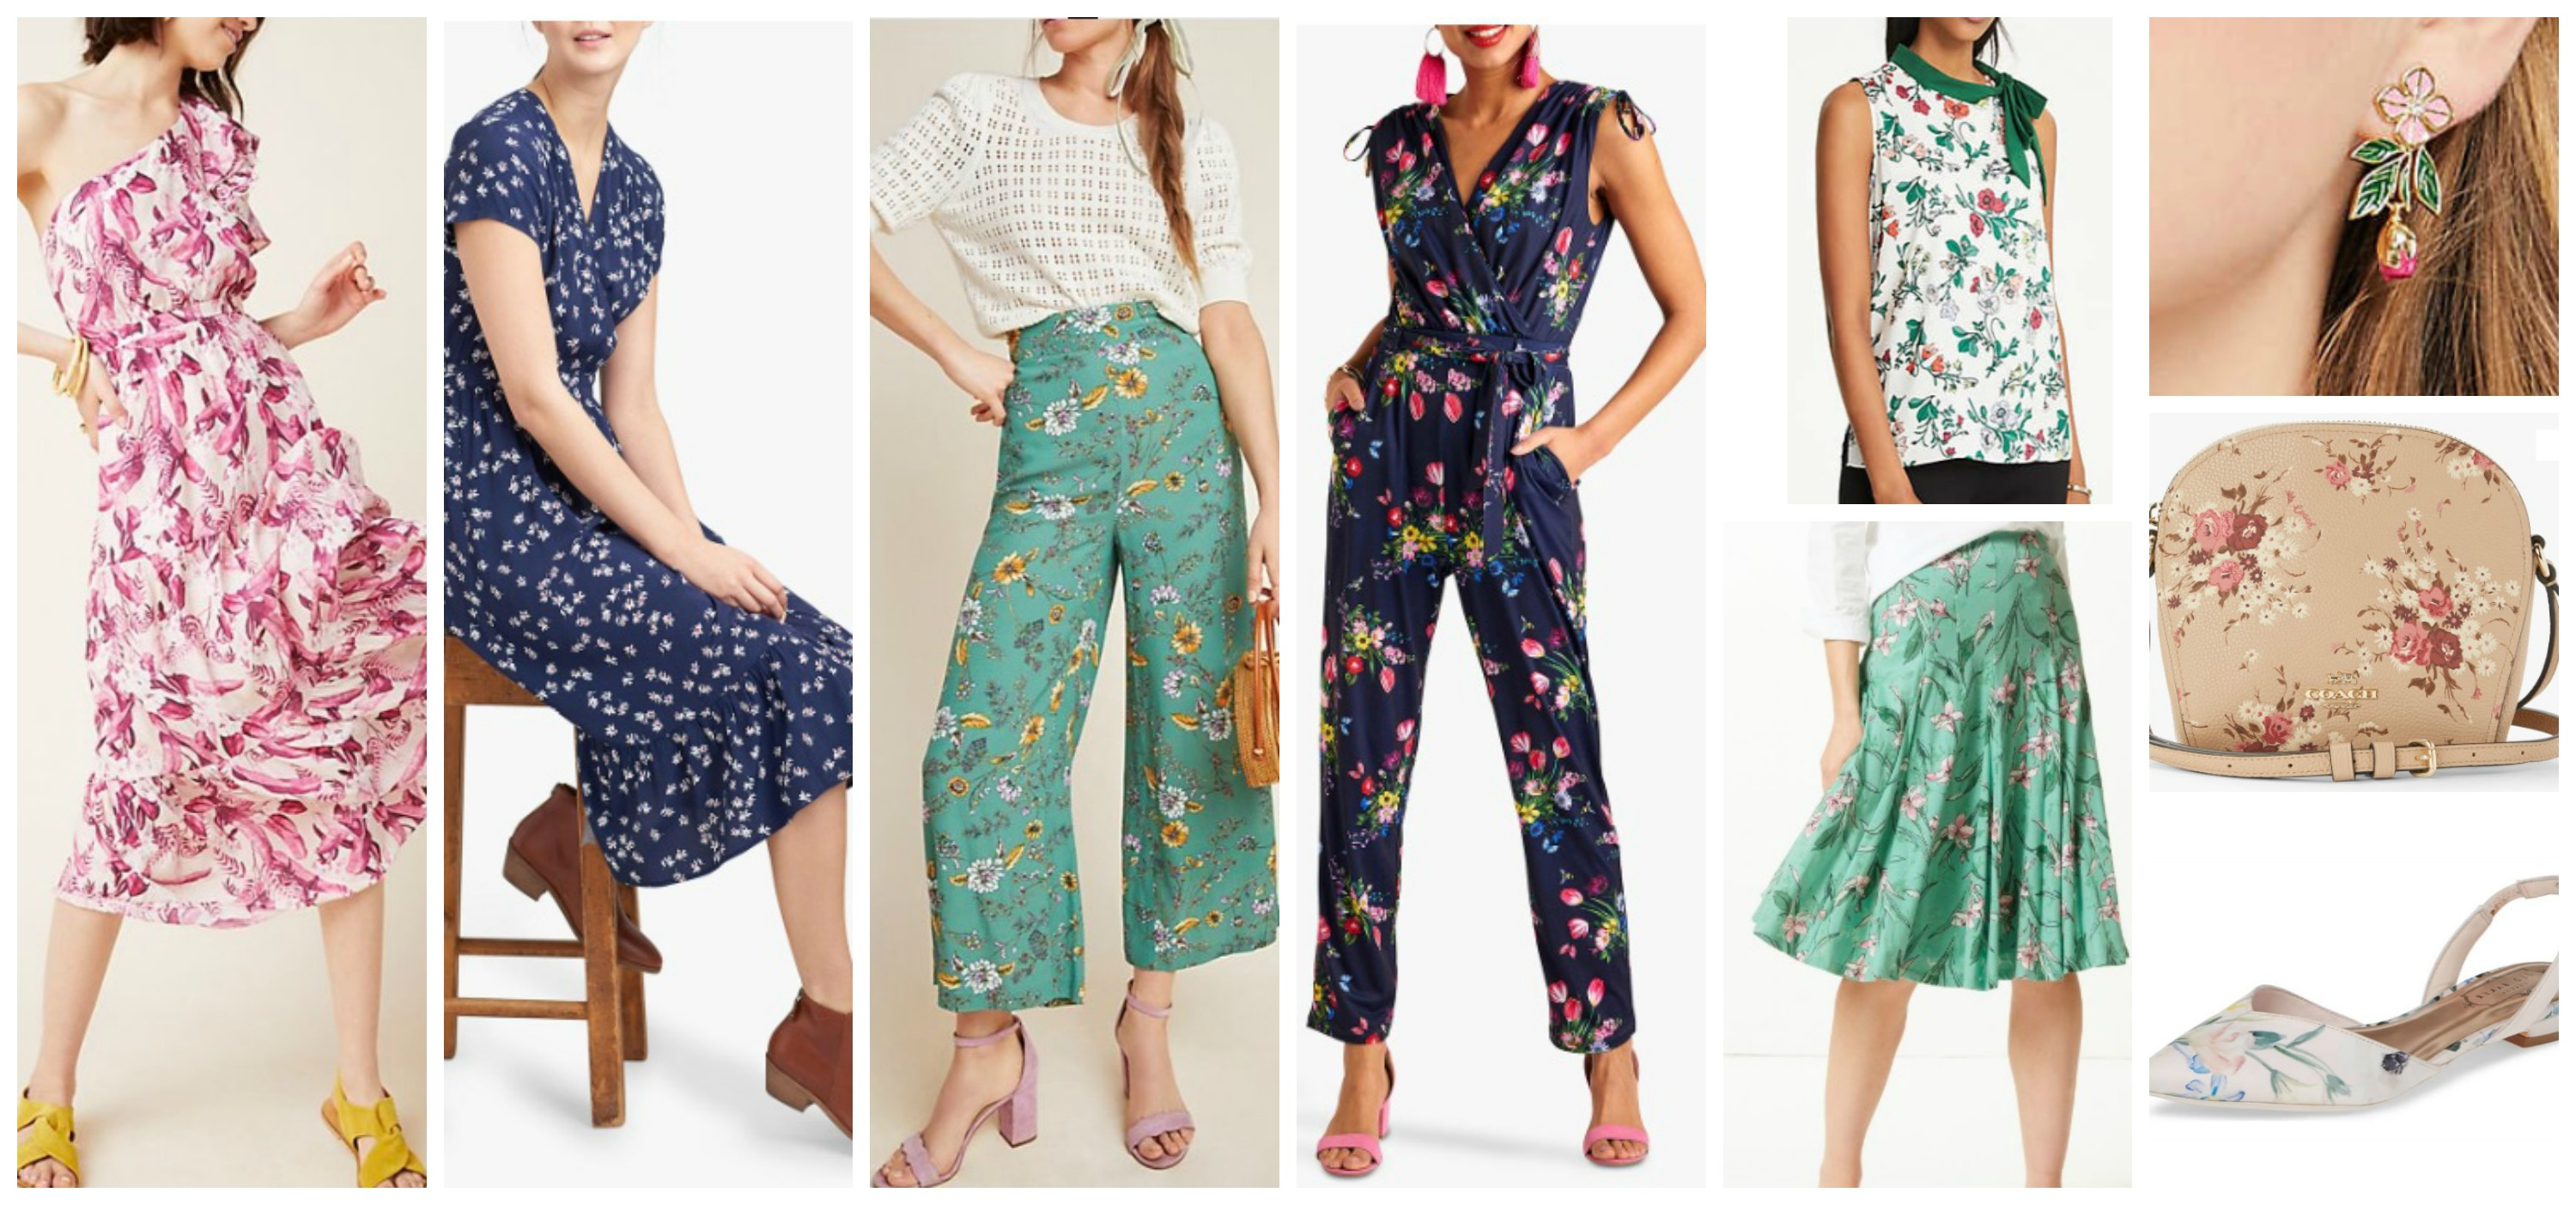 spring summer fashion trends 2019 florals